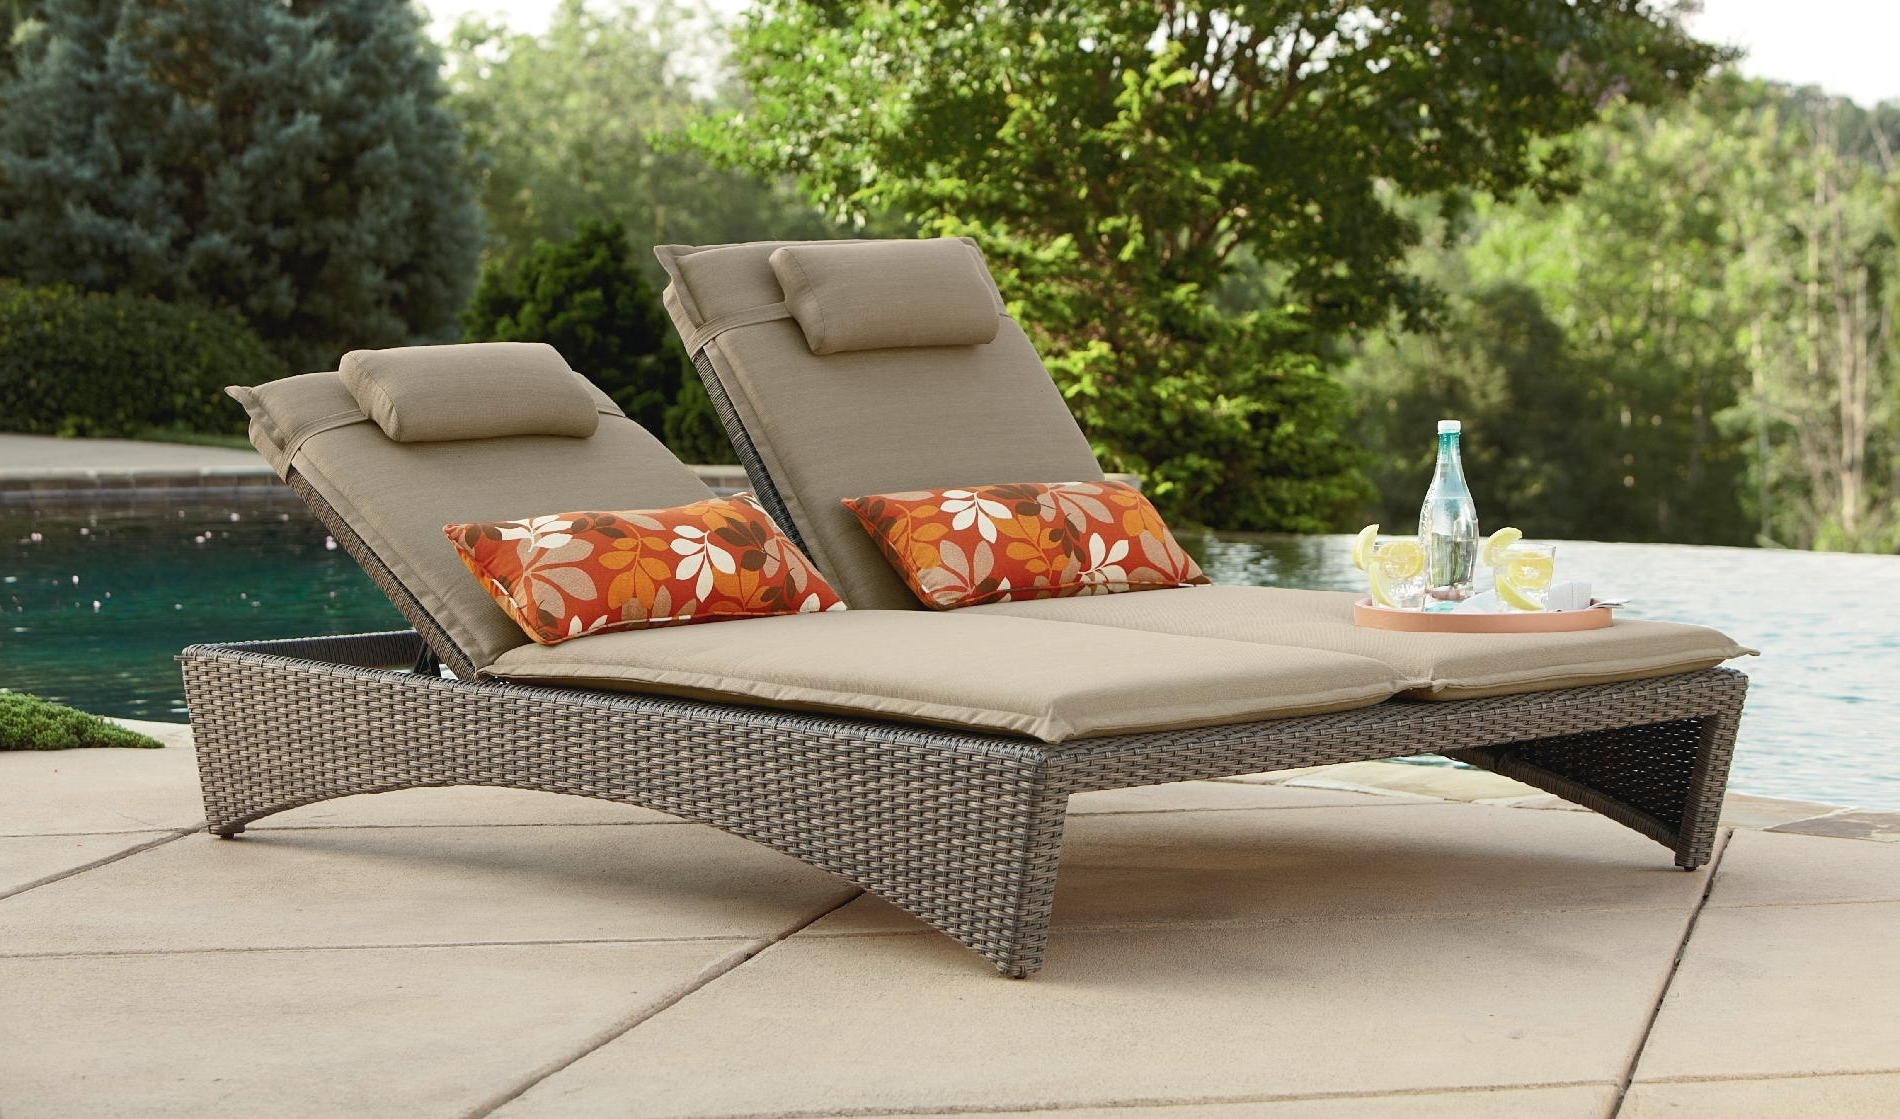 Hotel Pool Chaise Lounge Chairs Inside Most Popular Lounge Chair : Couch With Chaise Comfy Chaise Lounge Stackable (View 6 of 15)